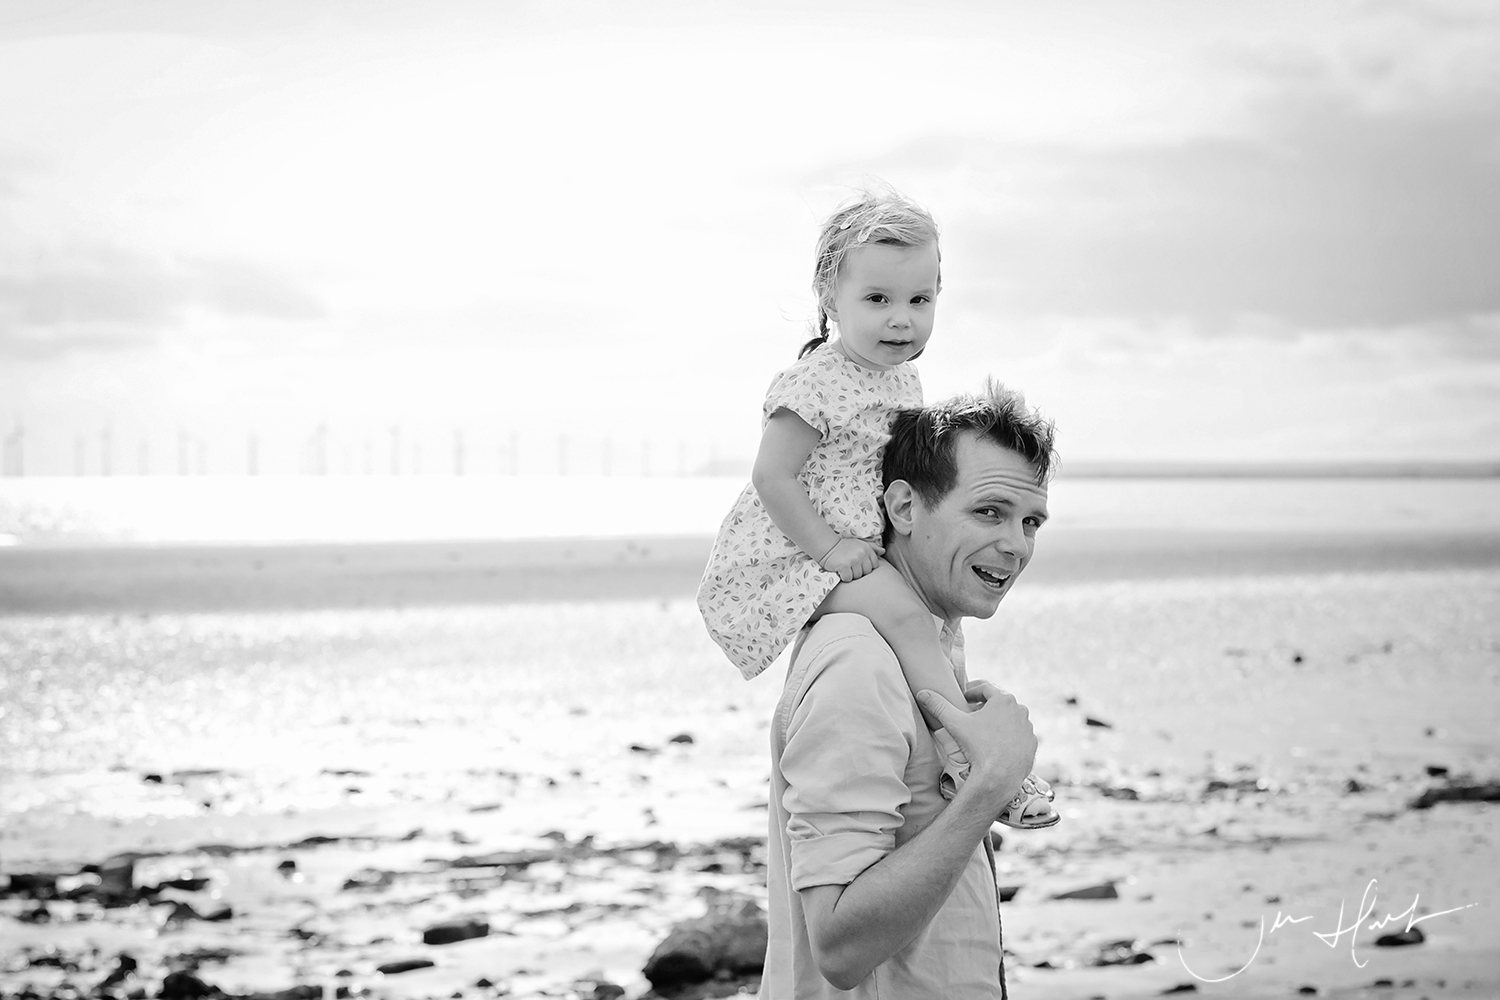 Family-Location-Photography-Middlesbrough-Jen-Hart-Martha-22August18_006-BW